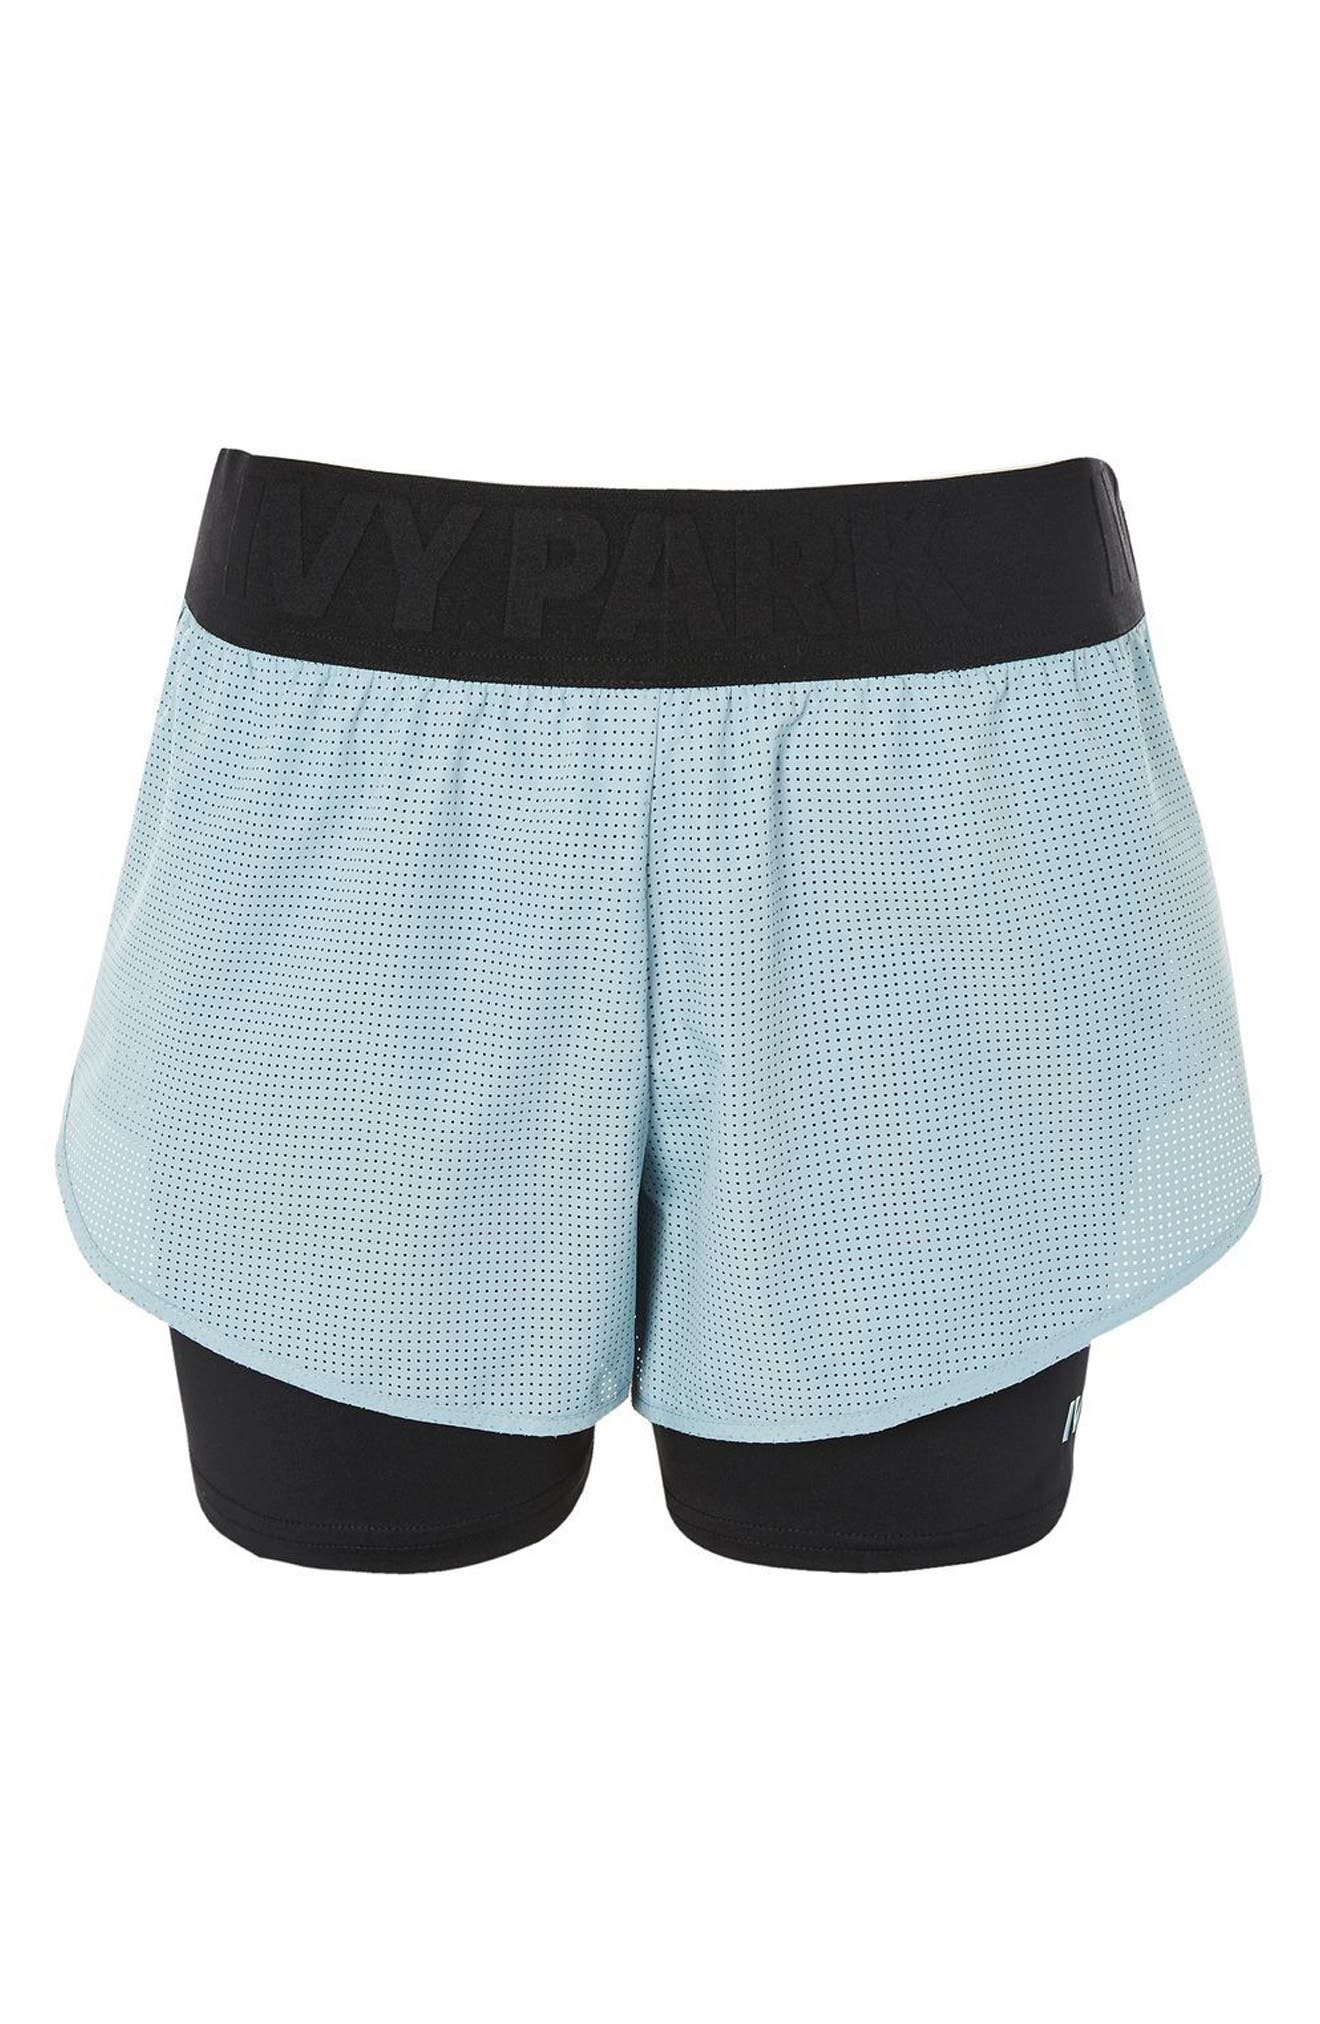 Alternate Image 4  - IVY PARK® Perforated 2-in-1 Runner Shorts